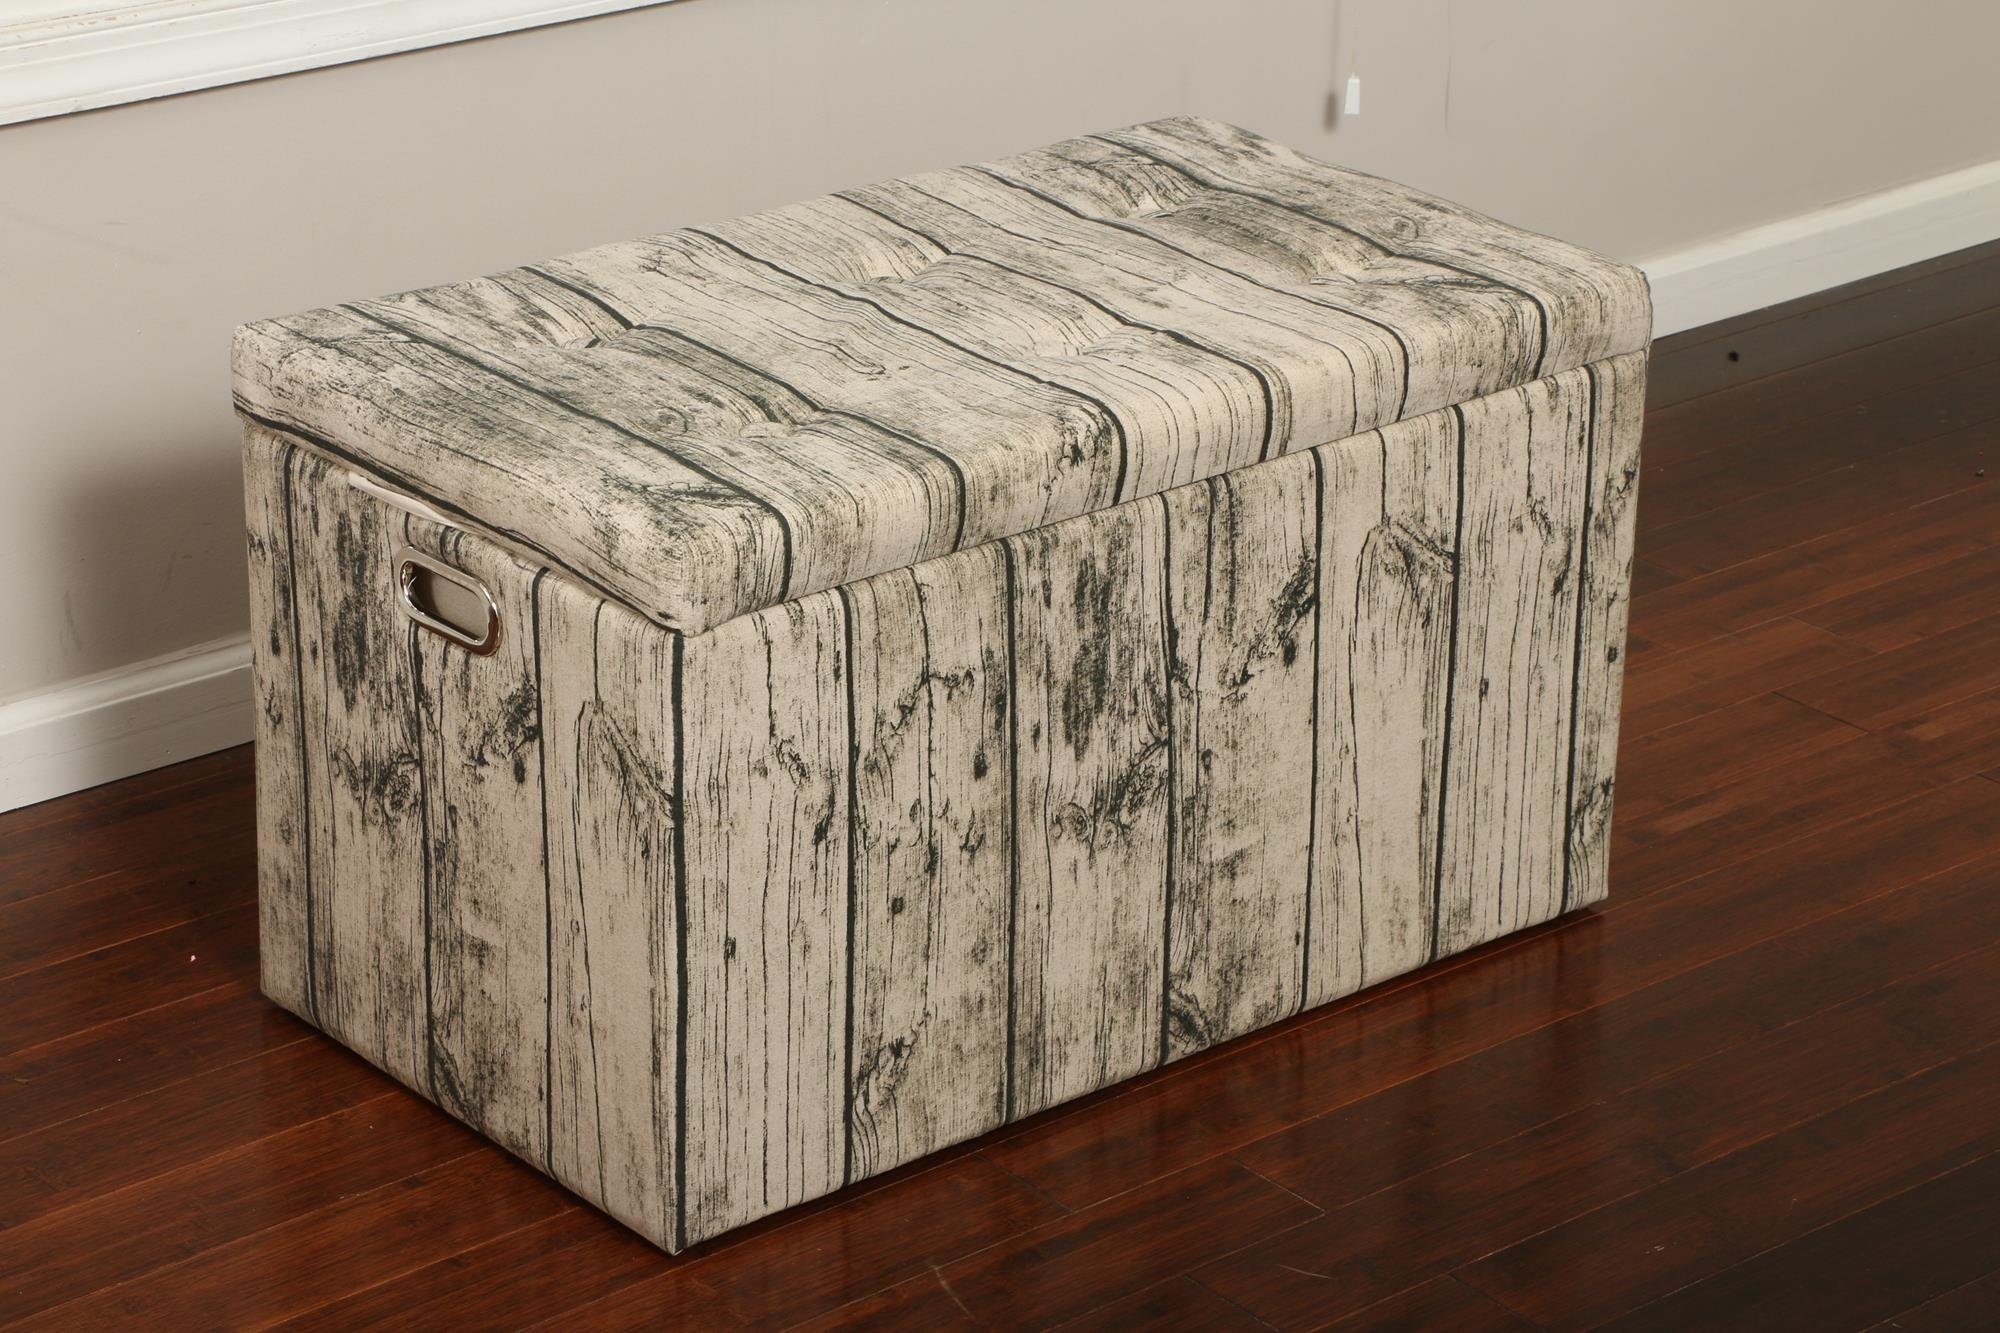 Oliver and Smith  Cloth Storage Ottoman With - 3 Ottomans & 2 Stools - 33'' x 17.5'' x 18.5'' - 1343 Barn Door Wood